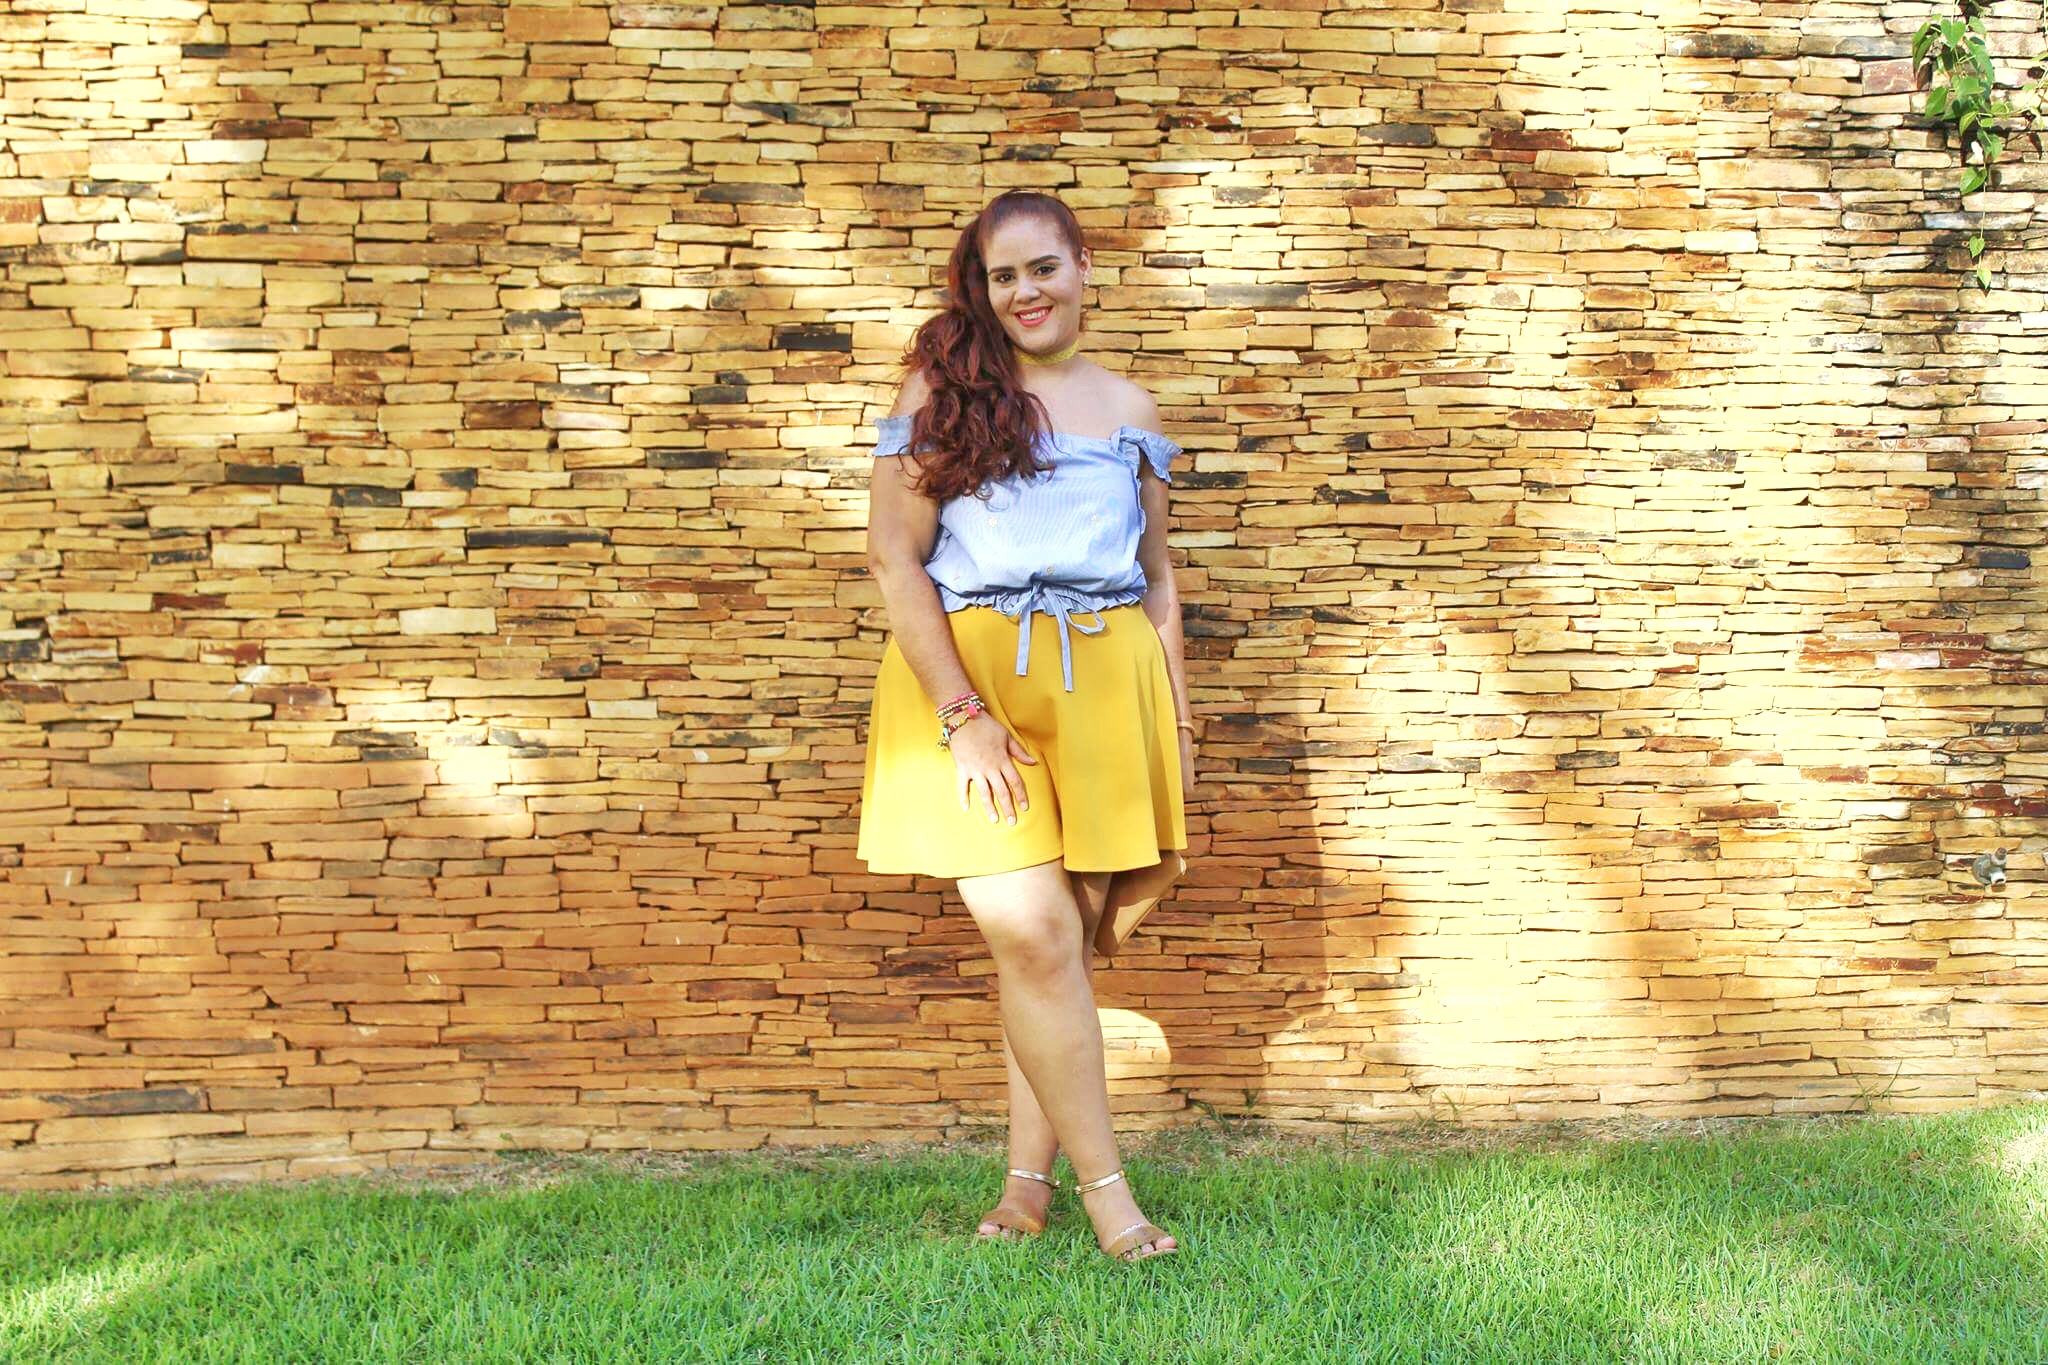 Top ,  Skirt  (Similar), Choker (Made by me for me lol),  Bracelets ,  Bag  (It's also a charger!), Sandals ( Option 1 ,  Option 2  &  Option 3 )